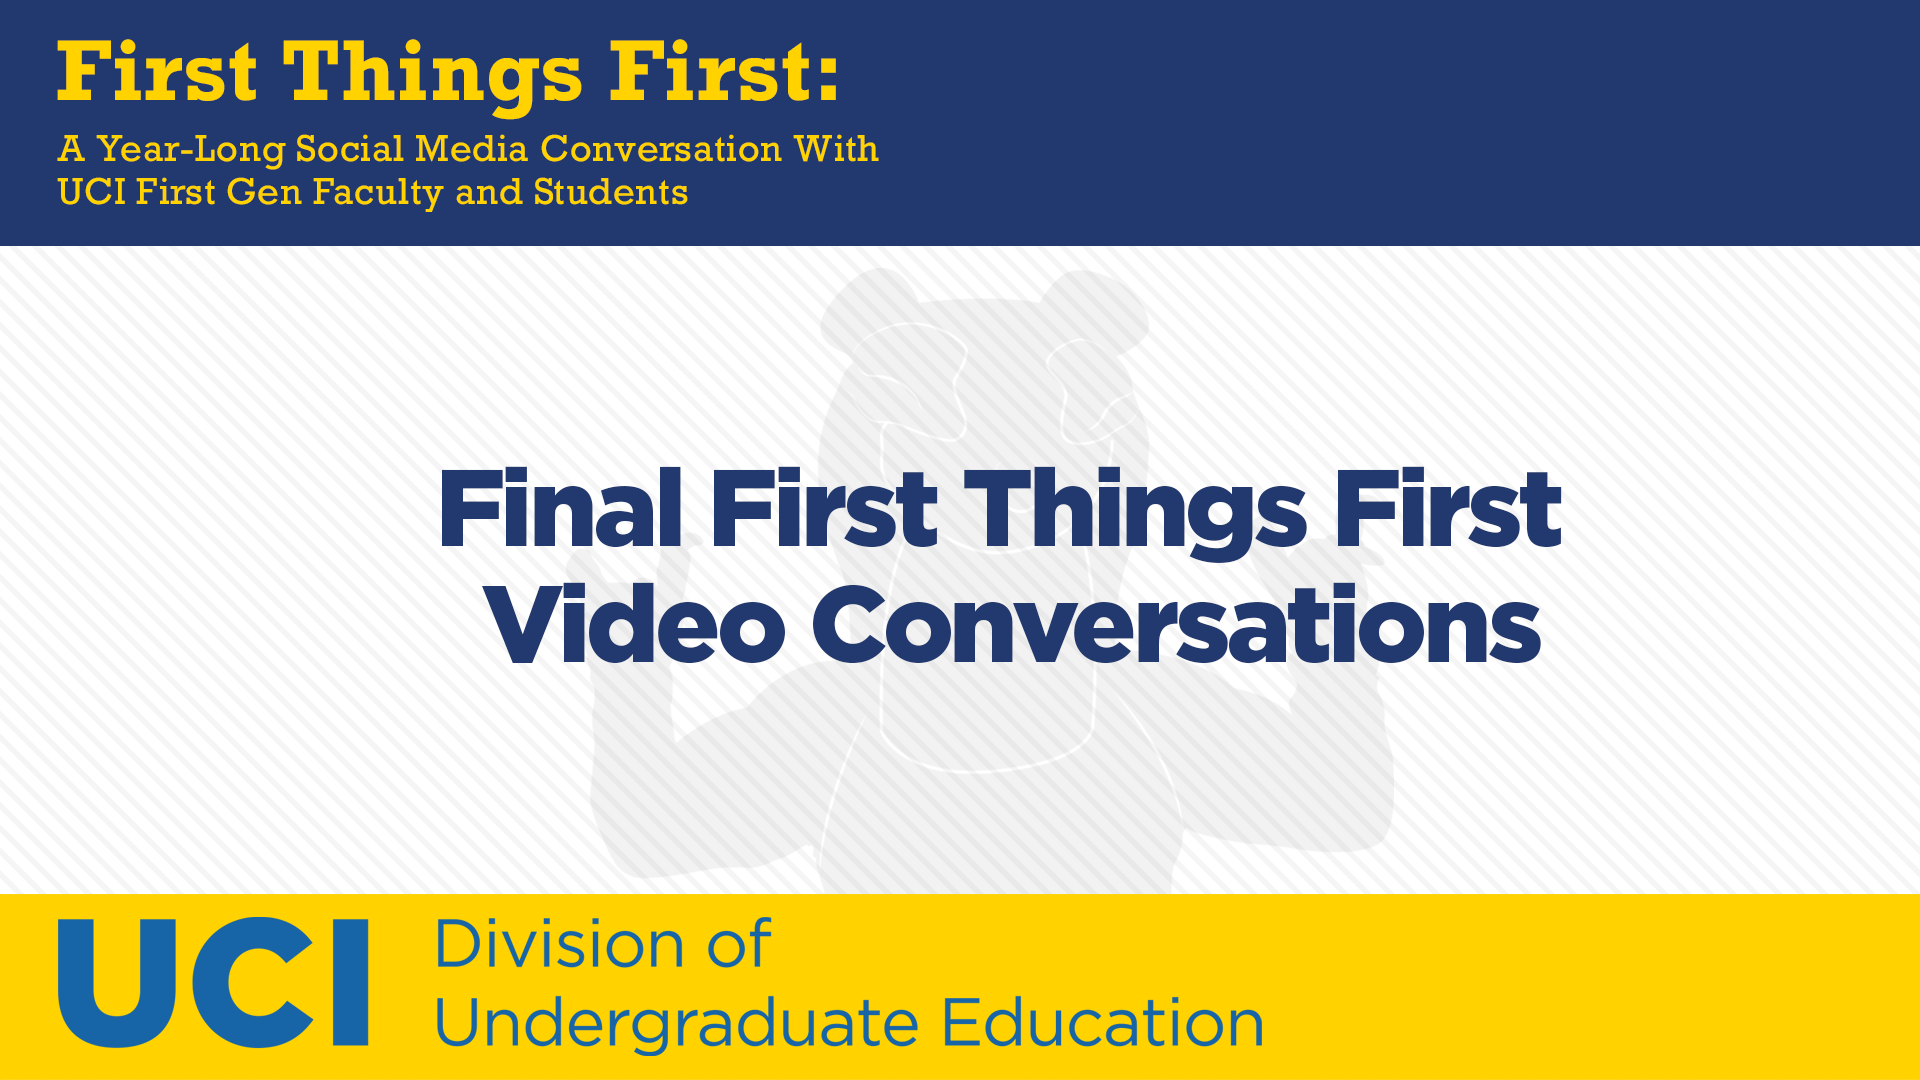 Final First Things First Conversations